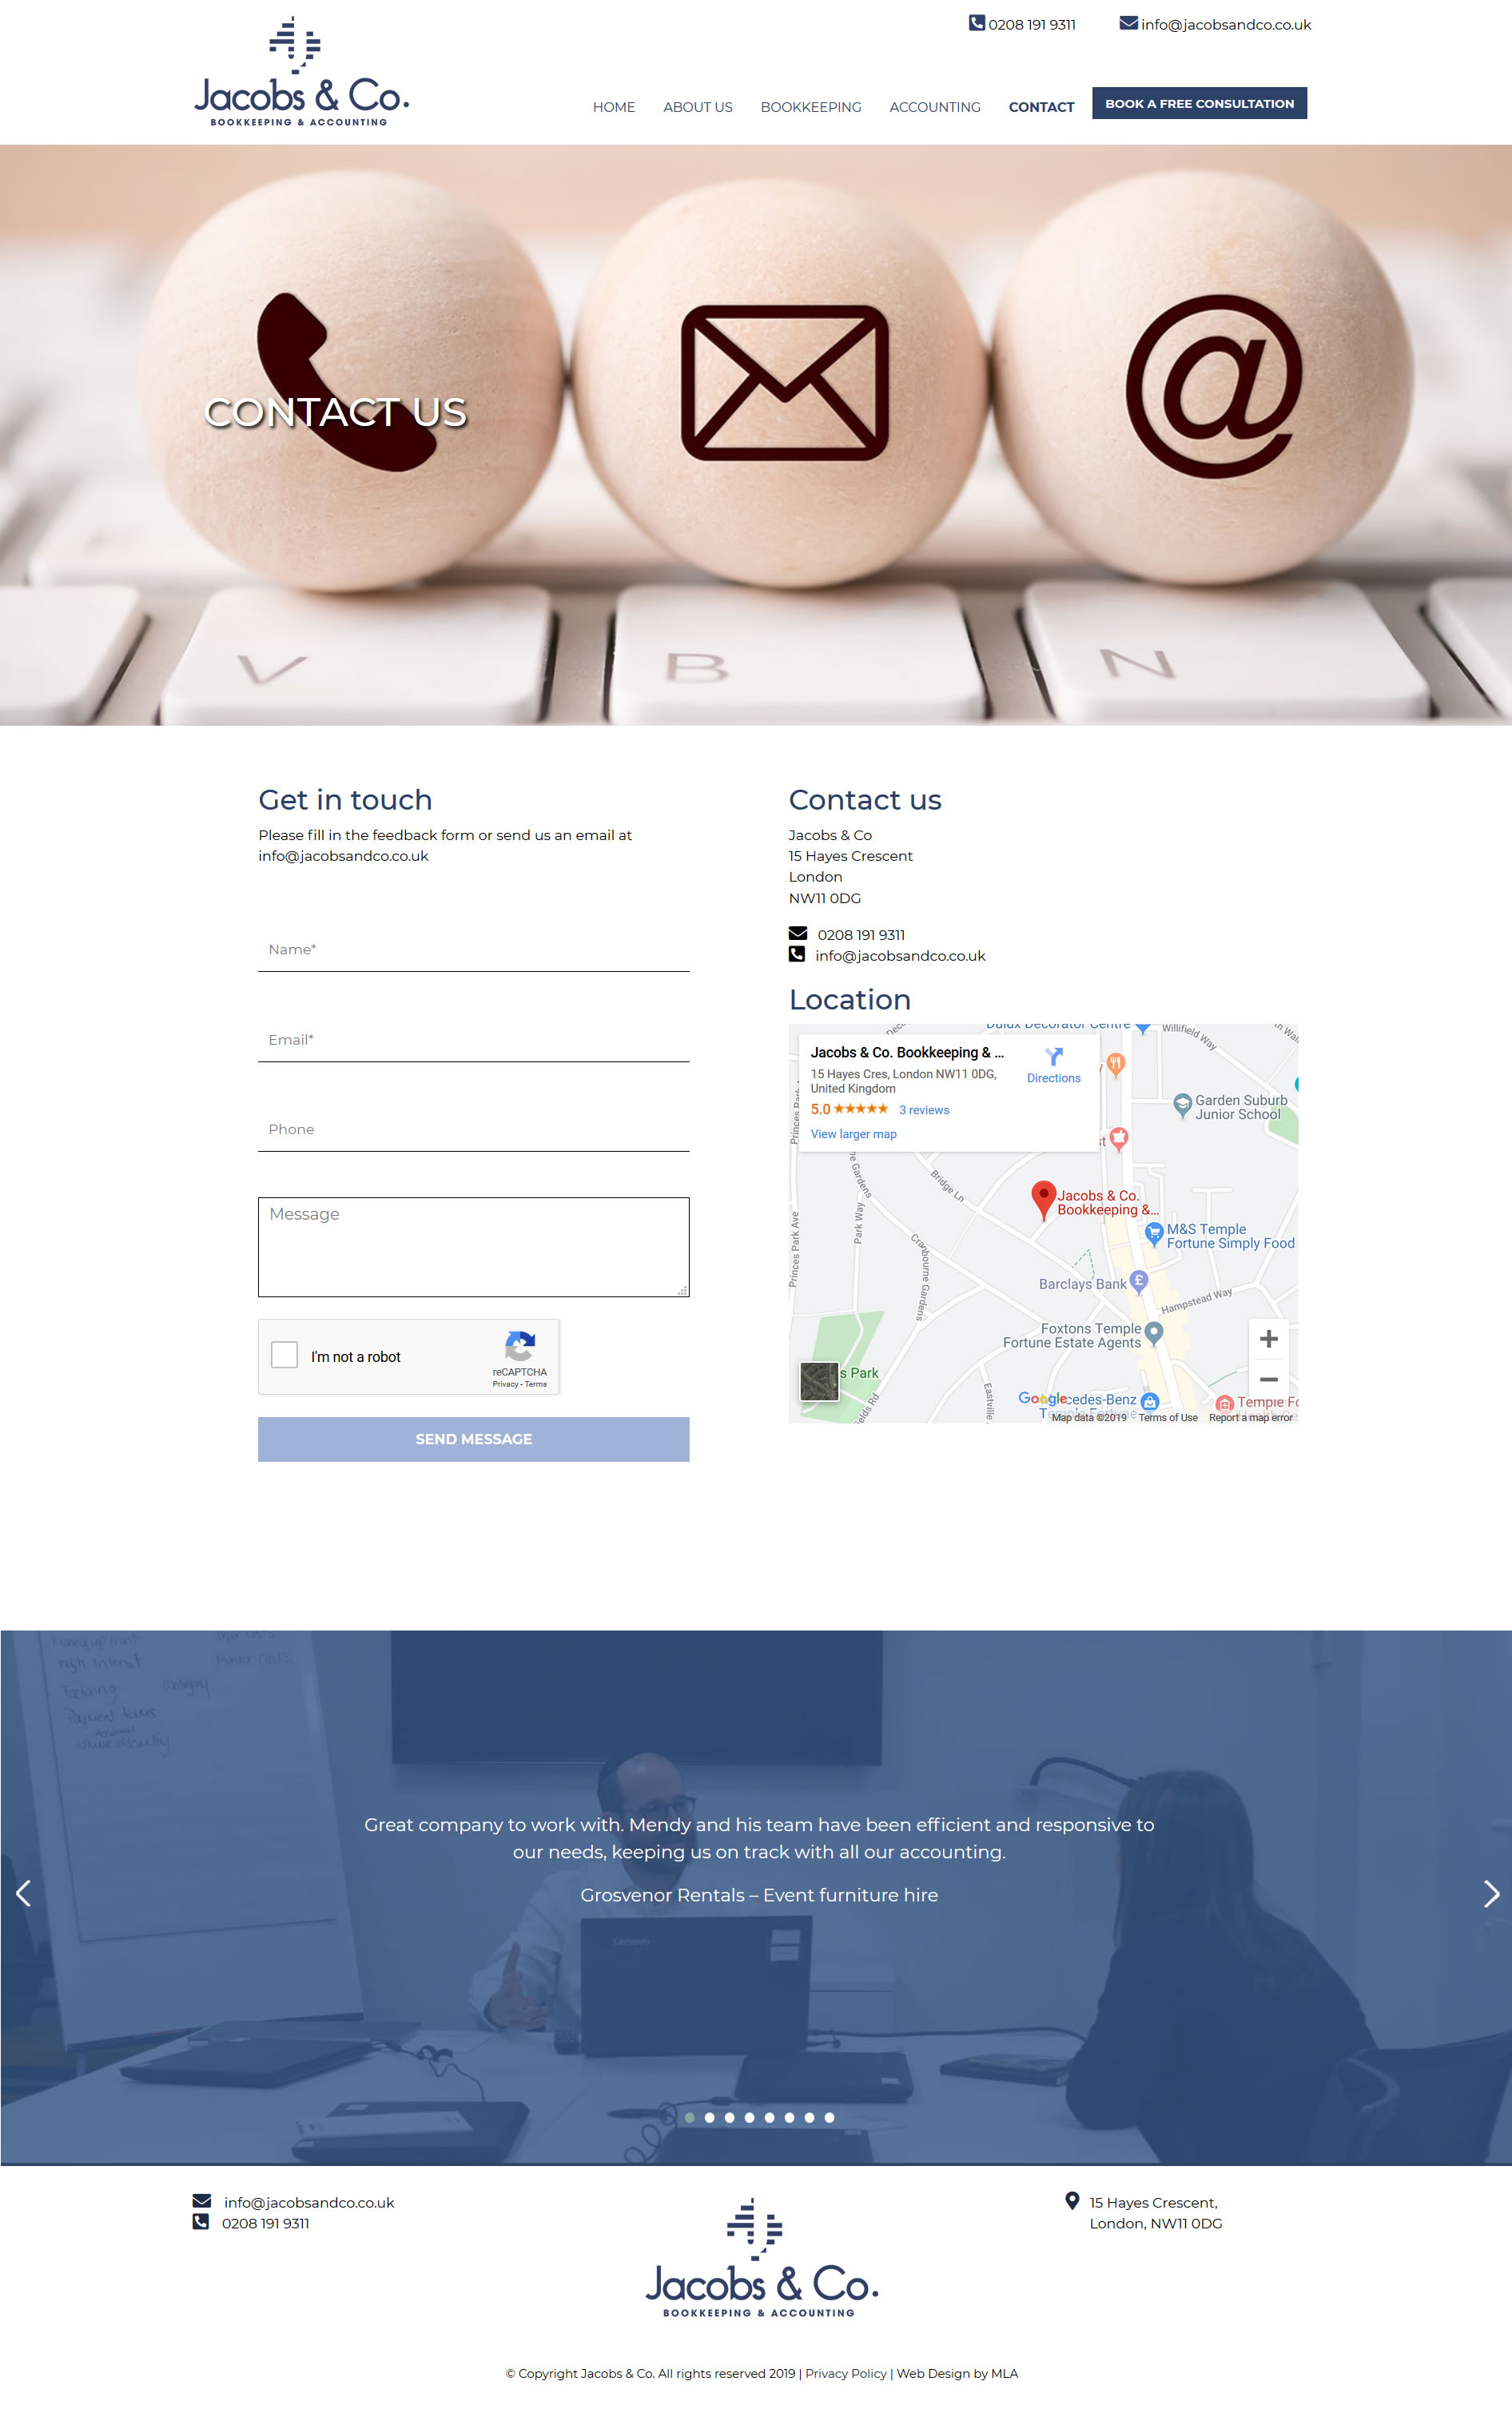 Jacobs and co website contact page design - Website design London - web design agency london